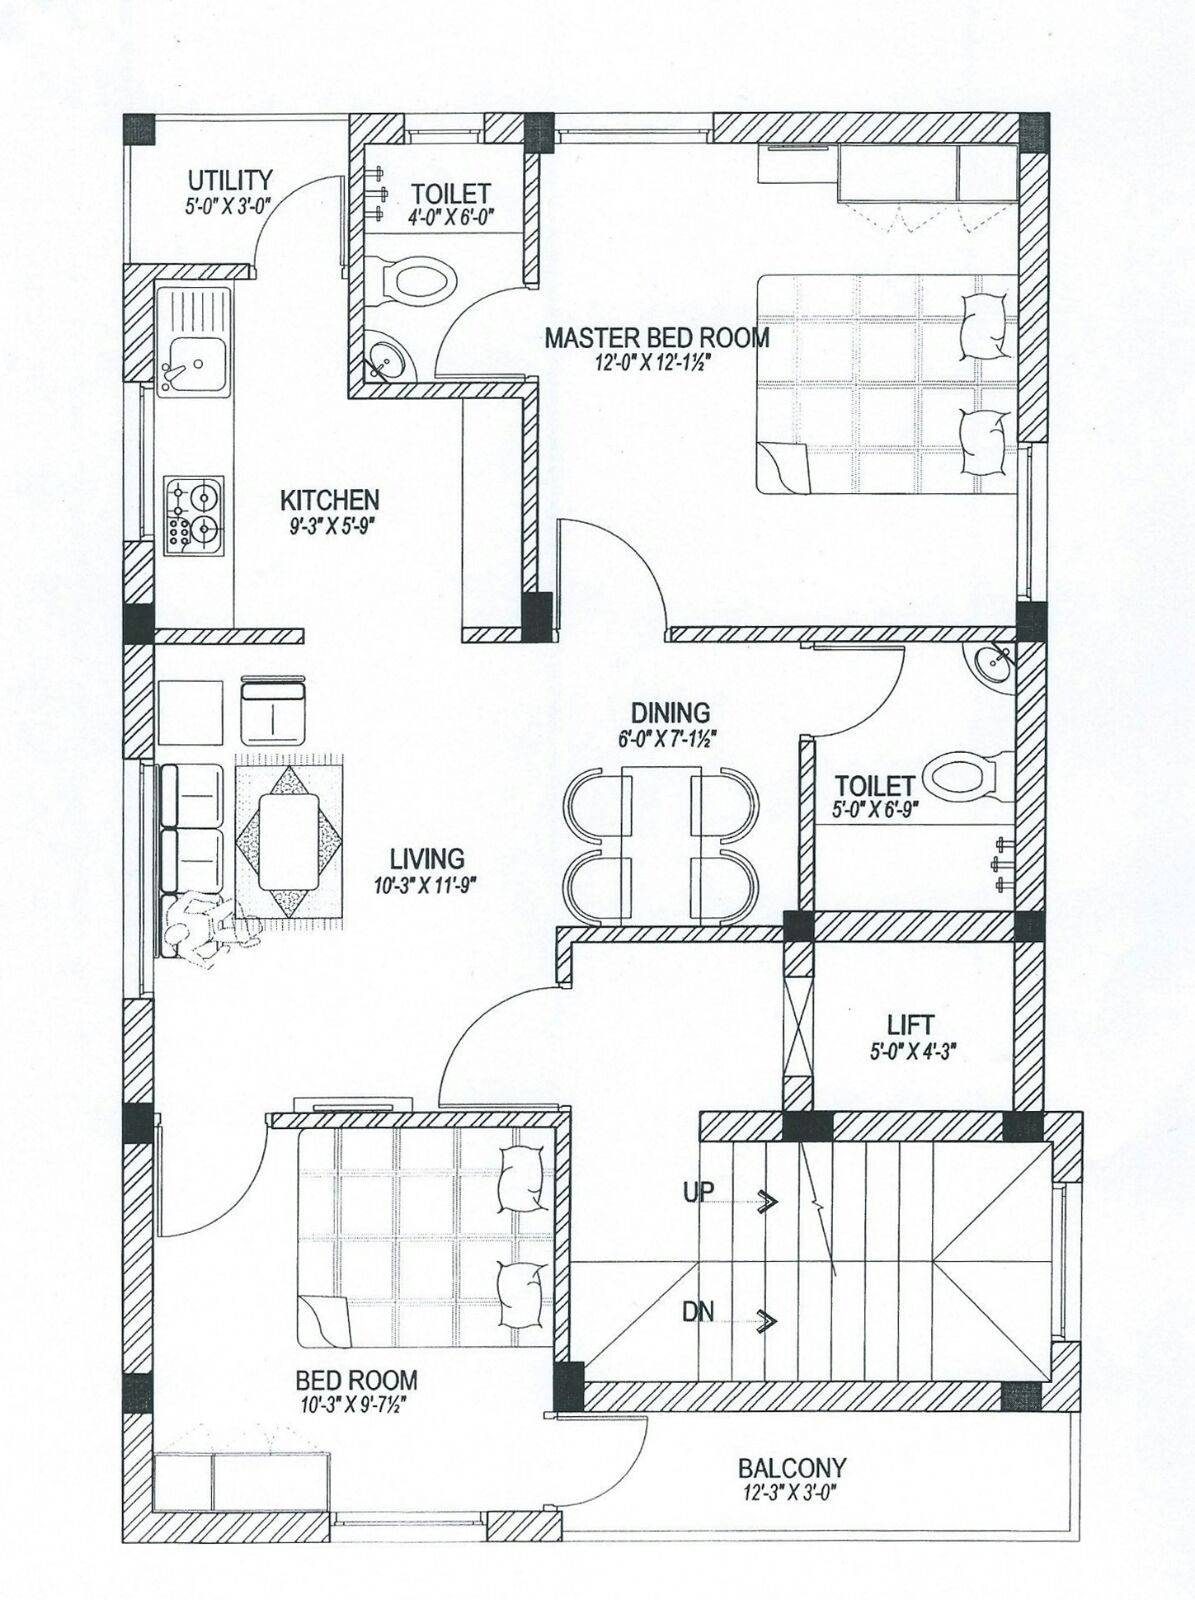 architect Plans Two bed room plans double bedrooms plan House plans Home plans Two bedroom homes double bedroom residence plans